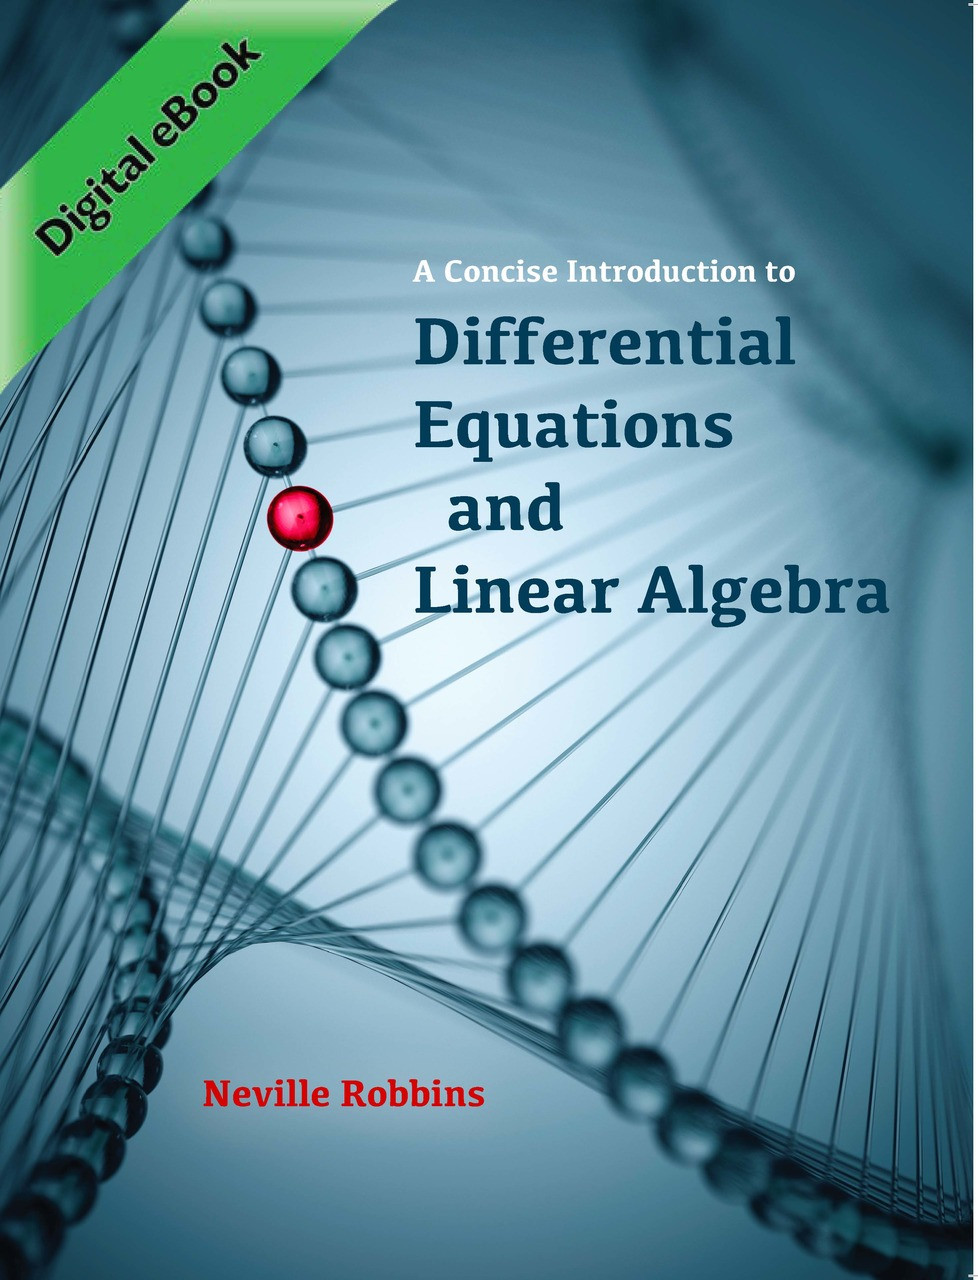 A concise introduction to differential equations and linear algebra image 1 fandeluxe Gallery